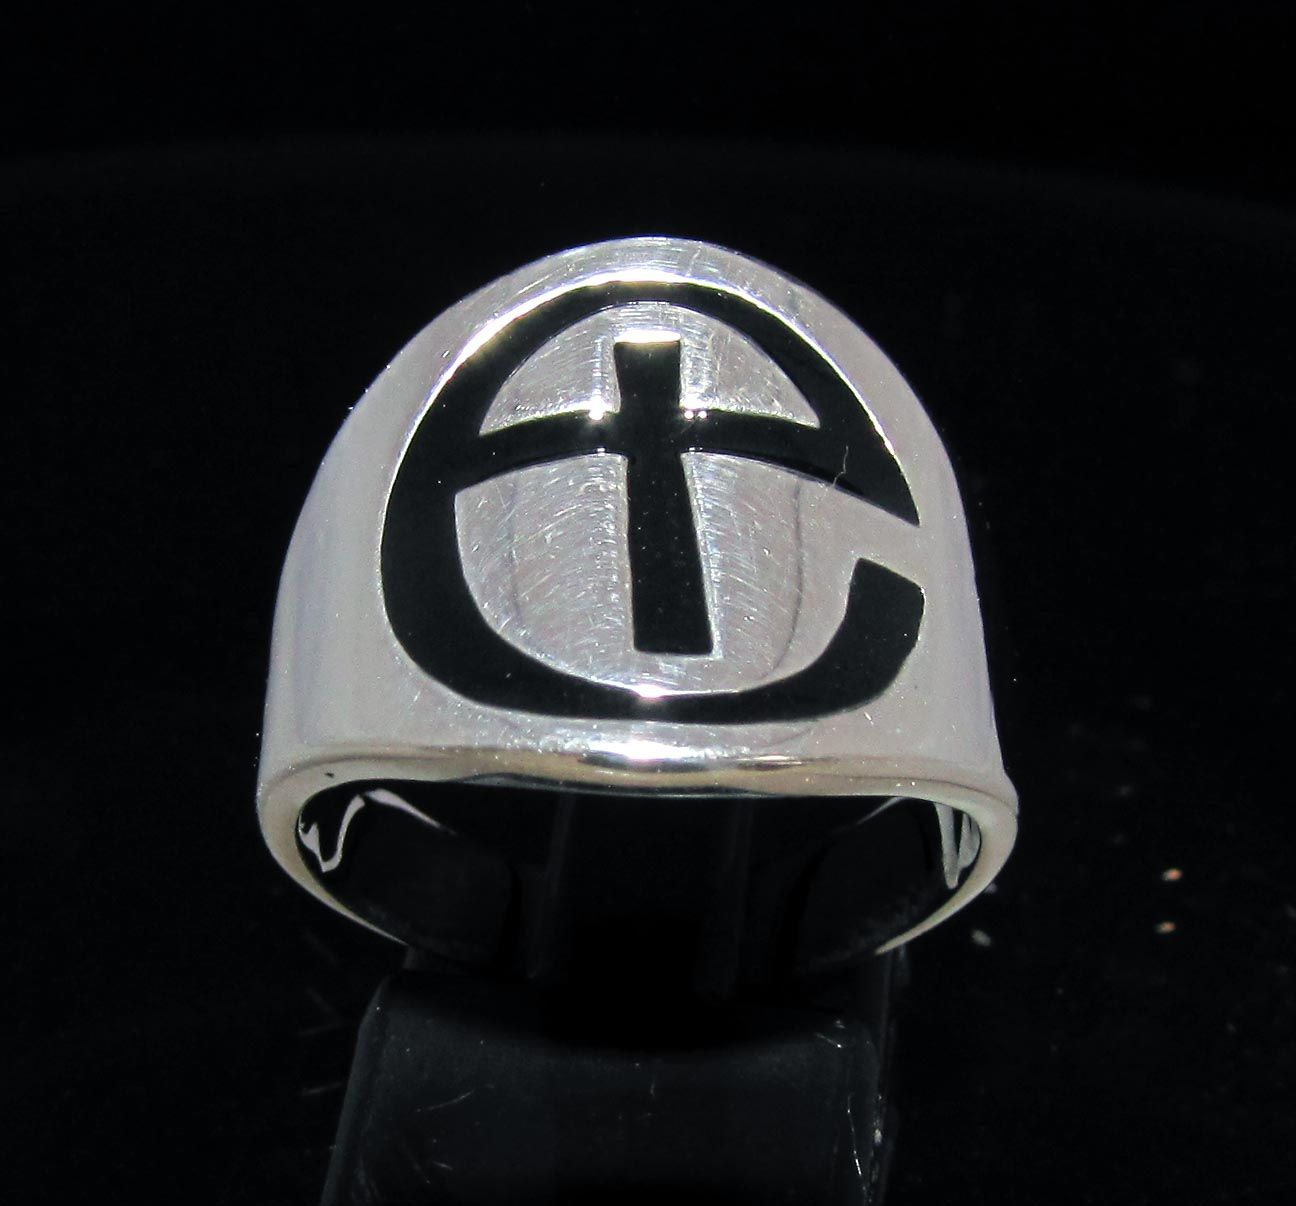 Sterling silver religious symbol ring IHS Christ monogram Three Nail Cross with Black enamel high polished 925 silver